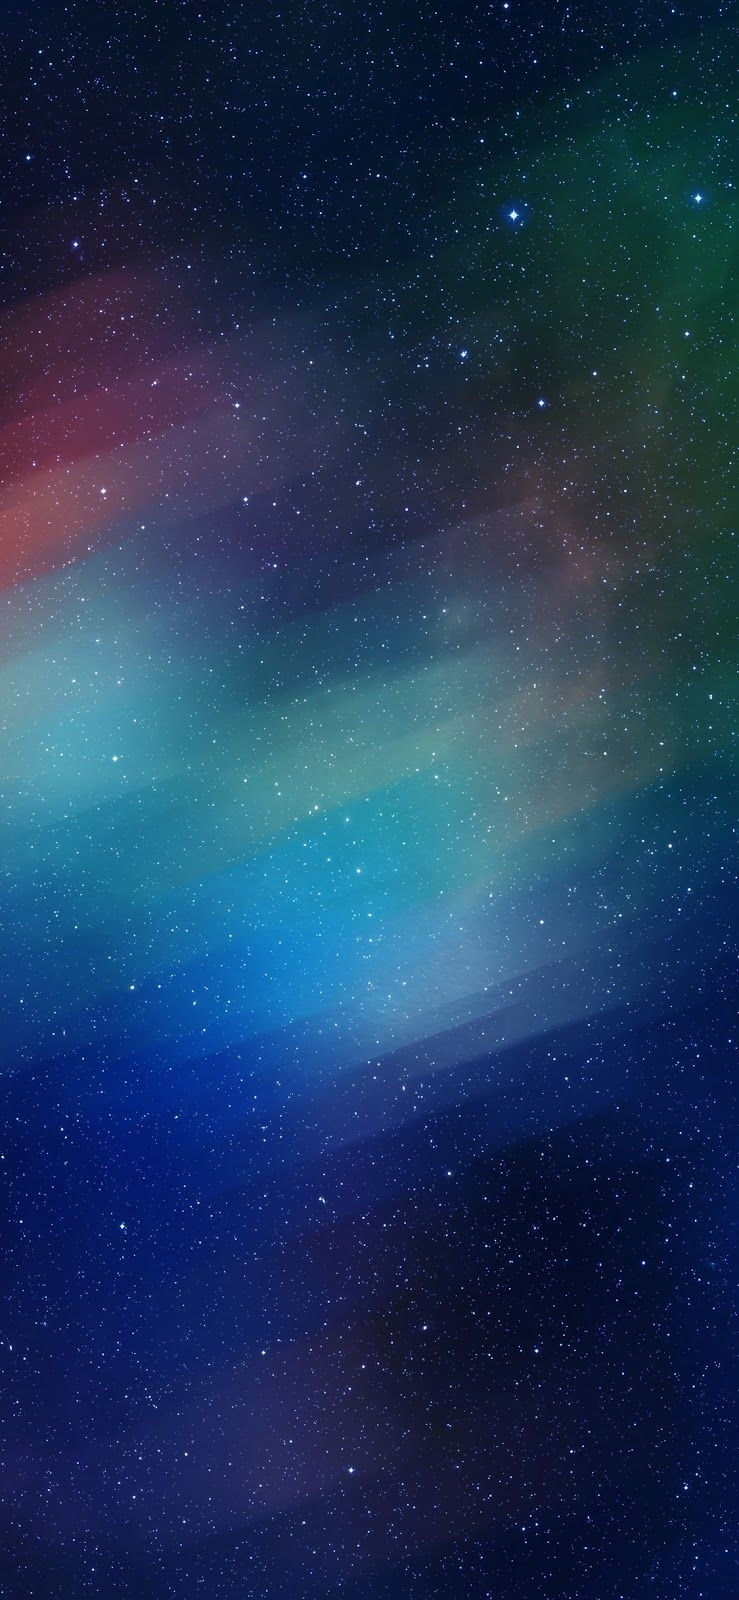 Colorful Stars Iphone X Best Iphone Wallpapers Iphone Wallpaper Tumblr Aesthetic Macbook Wallpaper